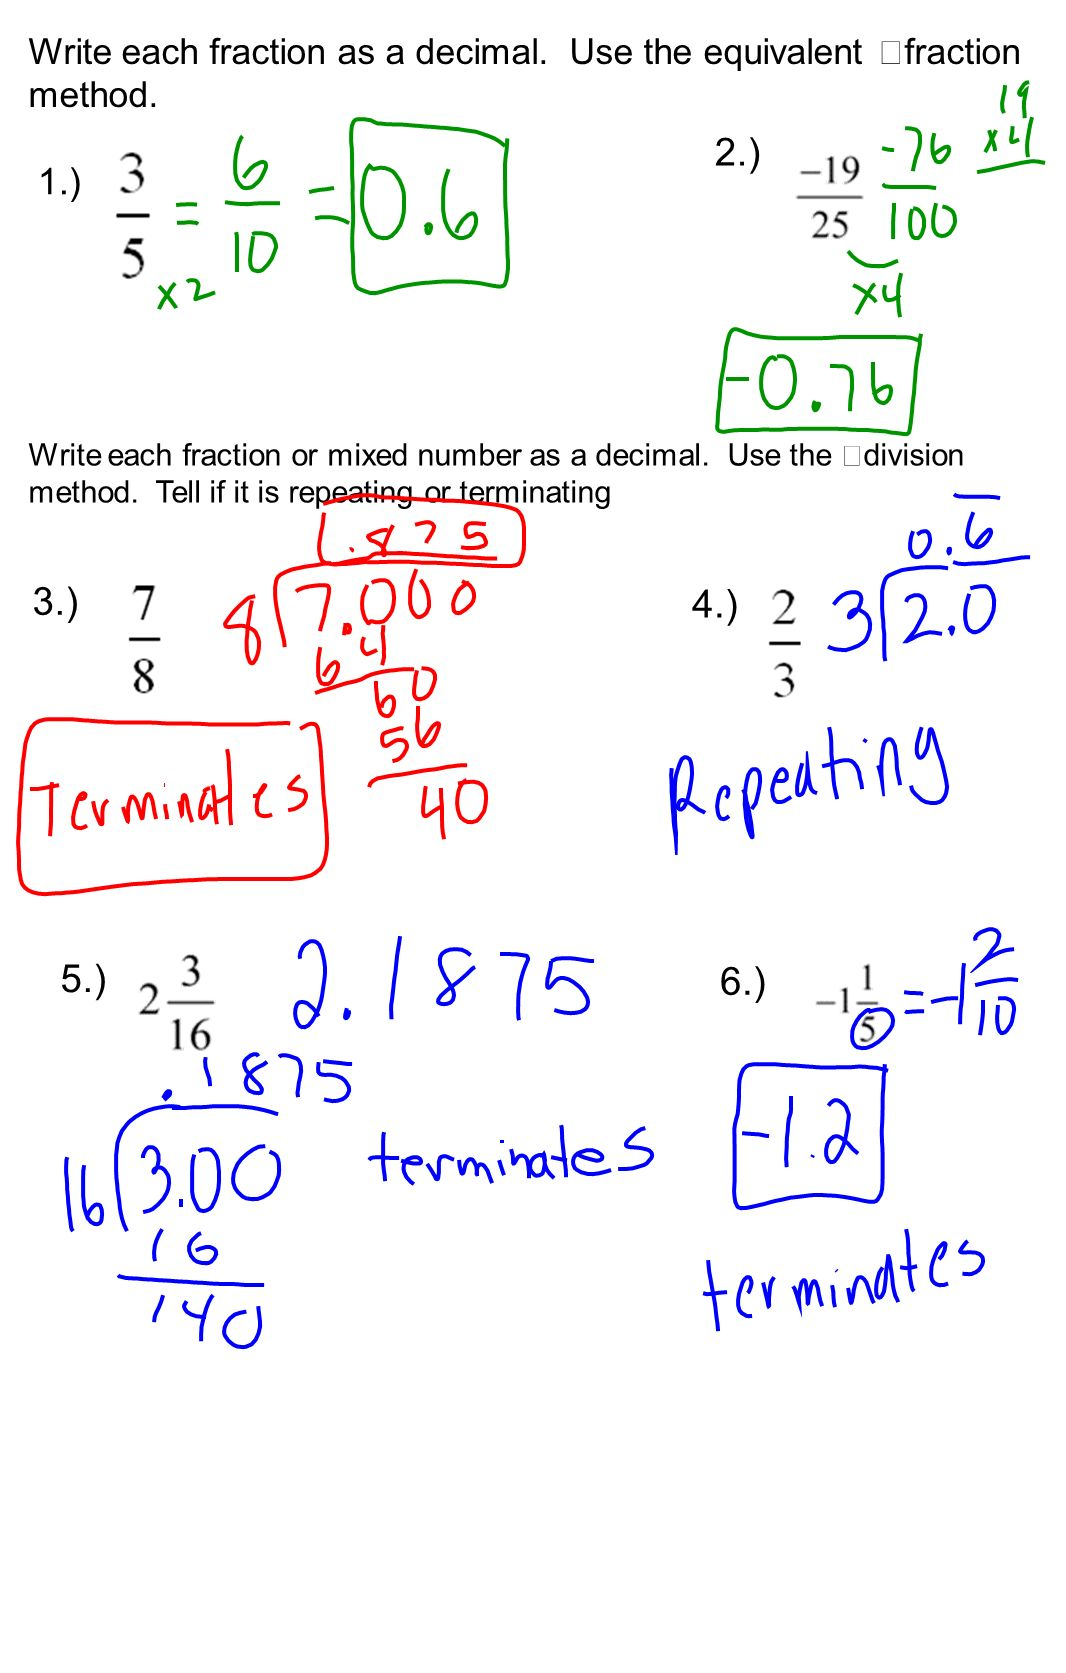 Write each fraction as a decimal. Use the equivalent fraction method.